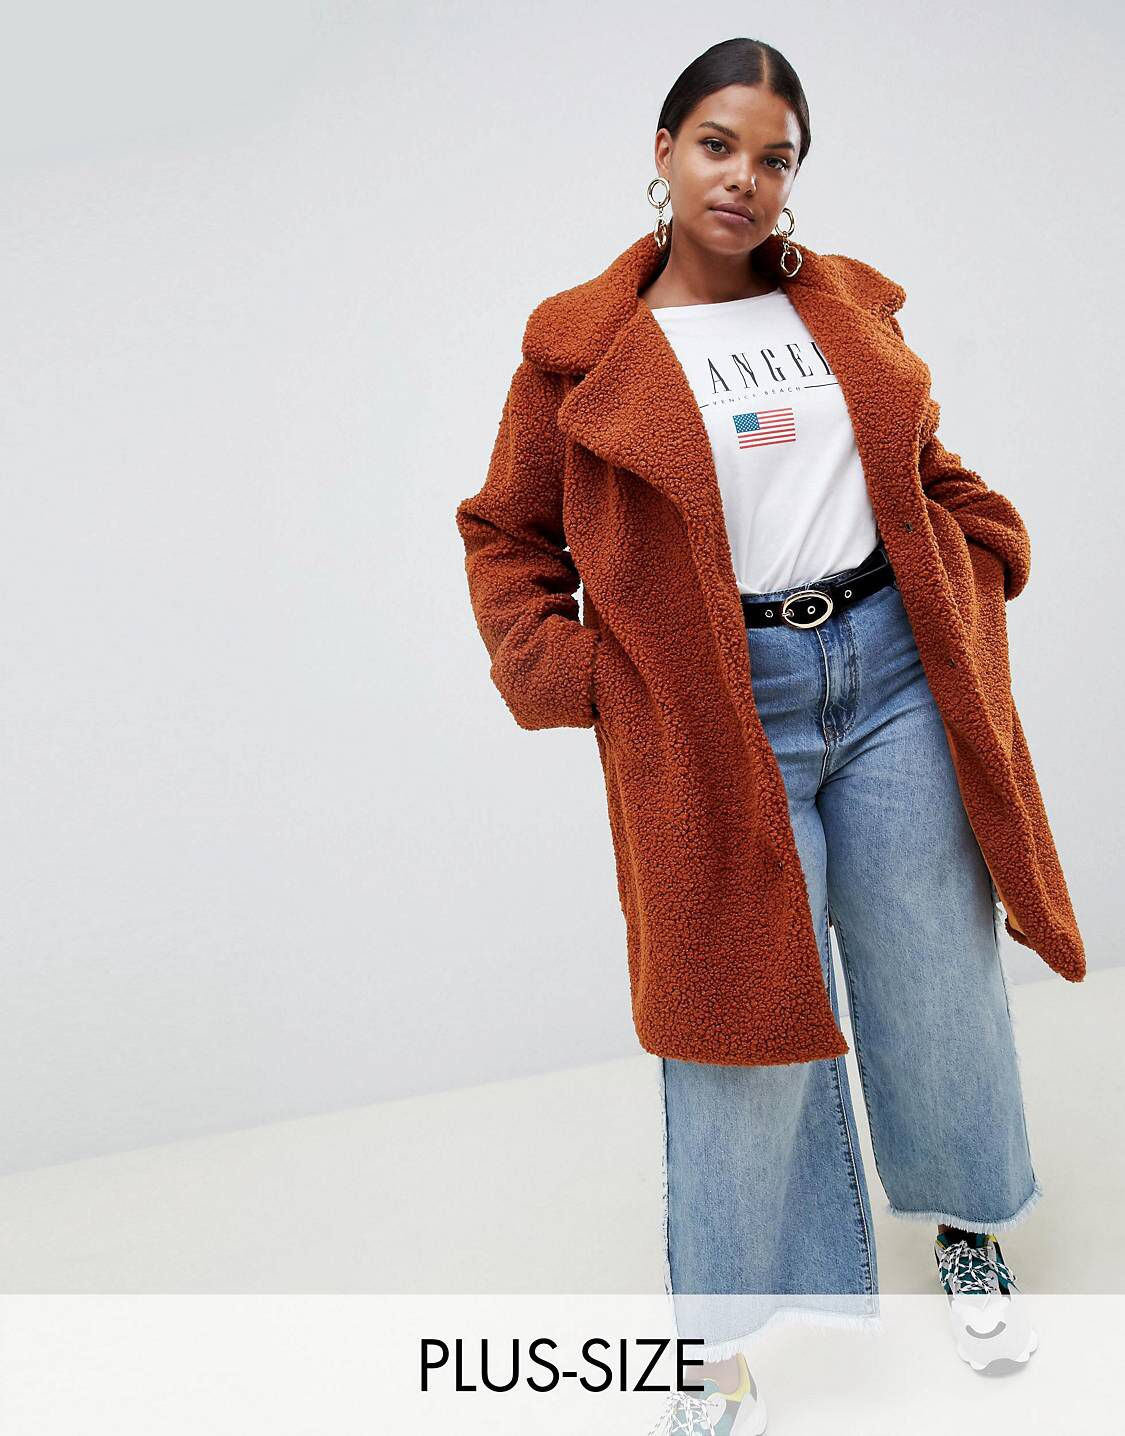 36f4ad5d67d Just when I thought I didn t need something new from ASOS